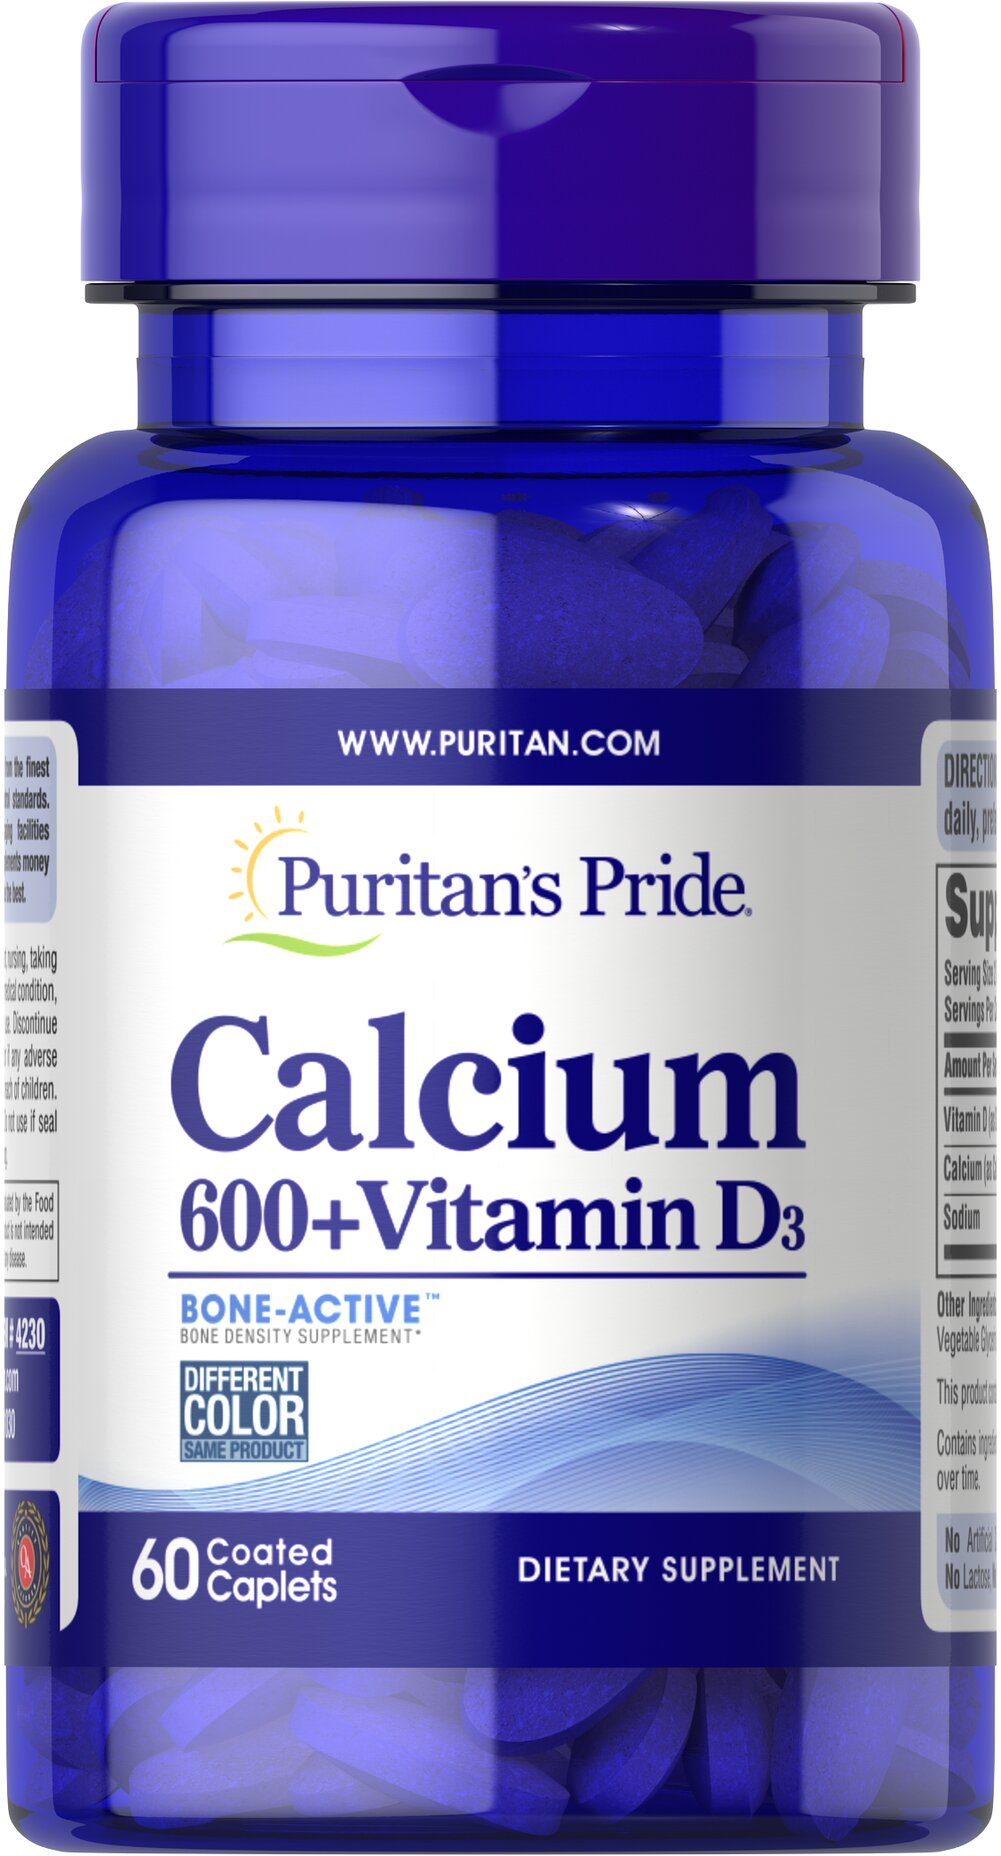 Calcium Carbonate 600 mg + Vitamin D 250 IU <p>Calcium is the primary mineral responsible for strong bones.** The body also uses Calcium for proper muscle contraction and nerve function.**  Just two tablets of our High Potency Calcium 600 + Vitamin D give you the protection of 120% of the Daily Value for Calcium. Each tablet contains 600 mg Calcium and 125 I.U. Vitamin D. Adults can take one or two tablets daily.</p> 60 Caplets 600 mg $6.29